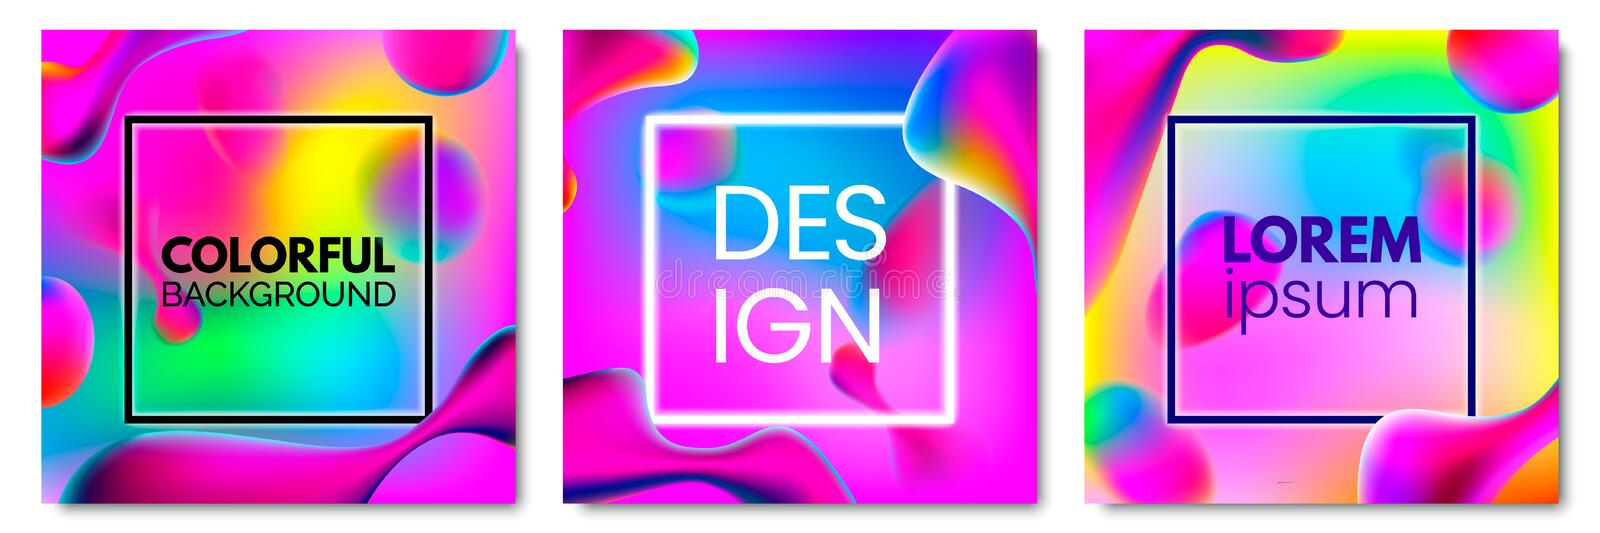 Modern vector template for brochure, leaflet, flyer, cover. Template for books, cards, banners, posters. Rainbow shades royalty free illustration